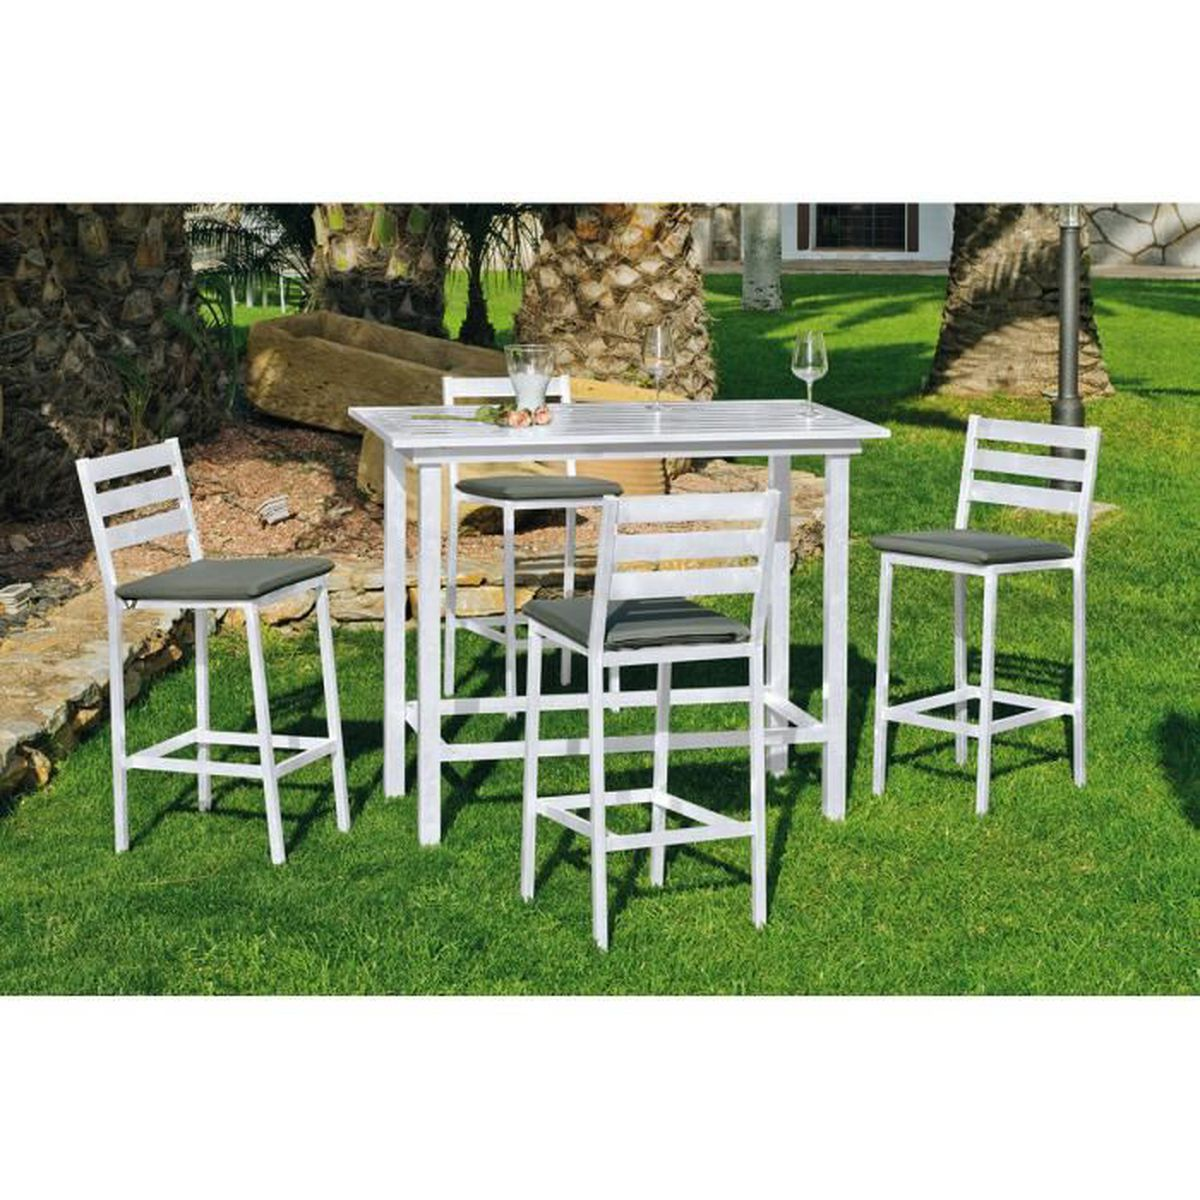 Best Achat Table Haute De Jardin Ideas - Yourmentor.info ...